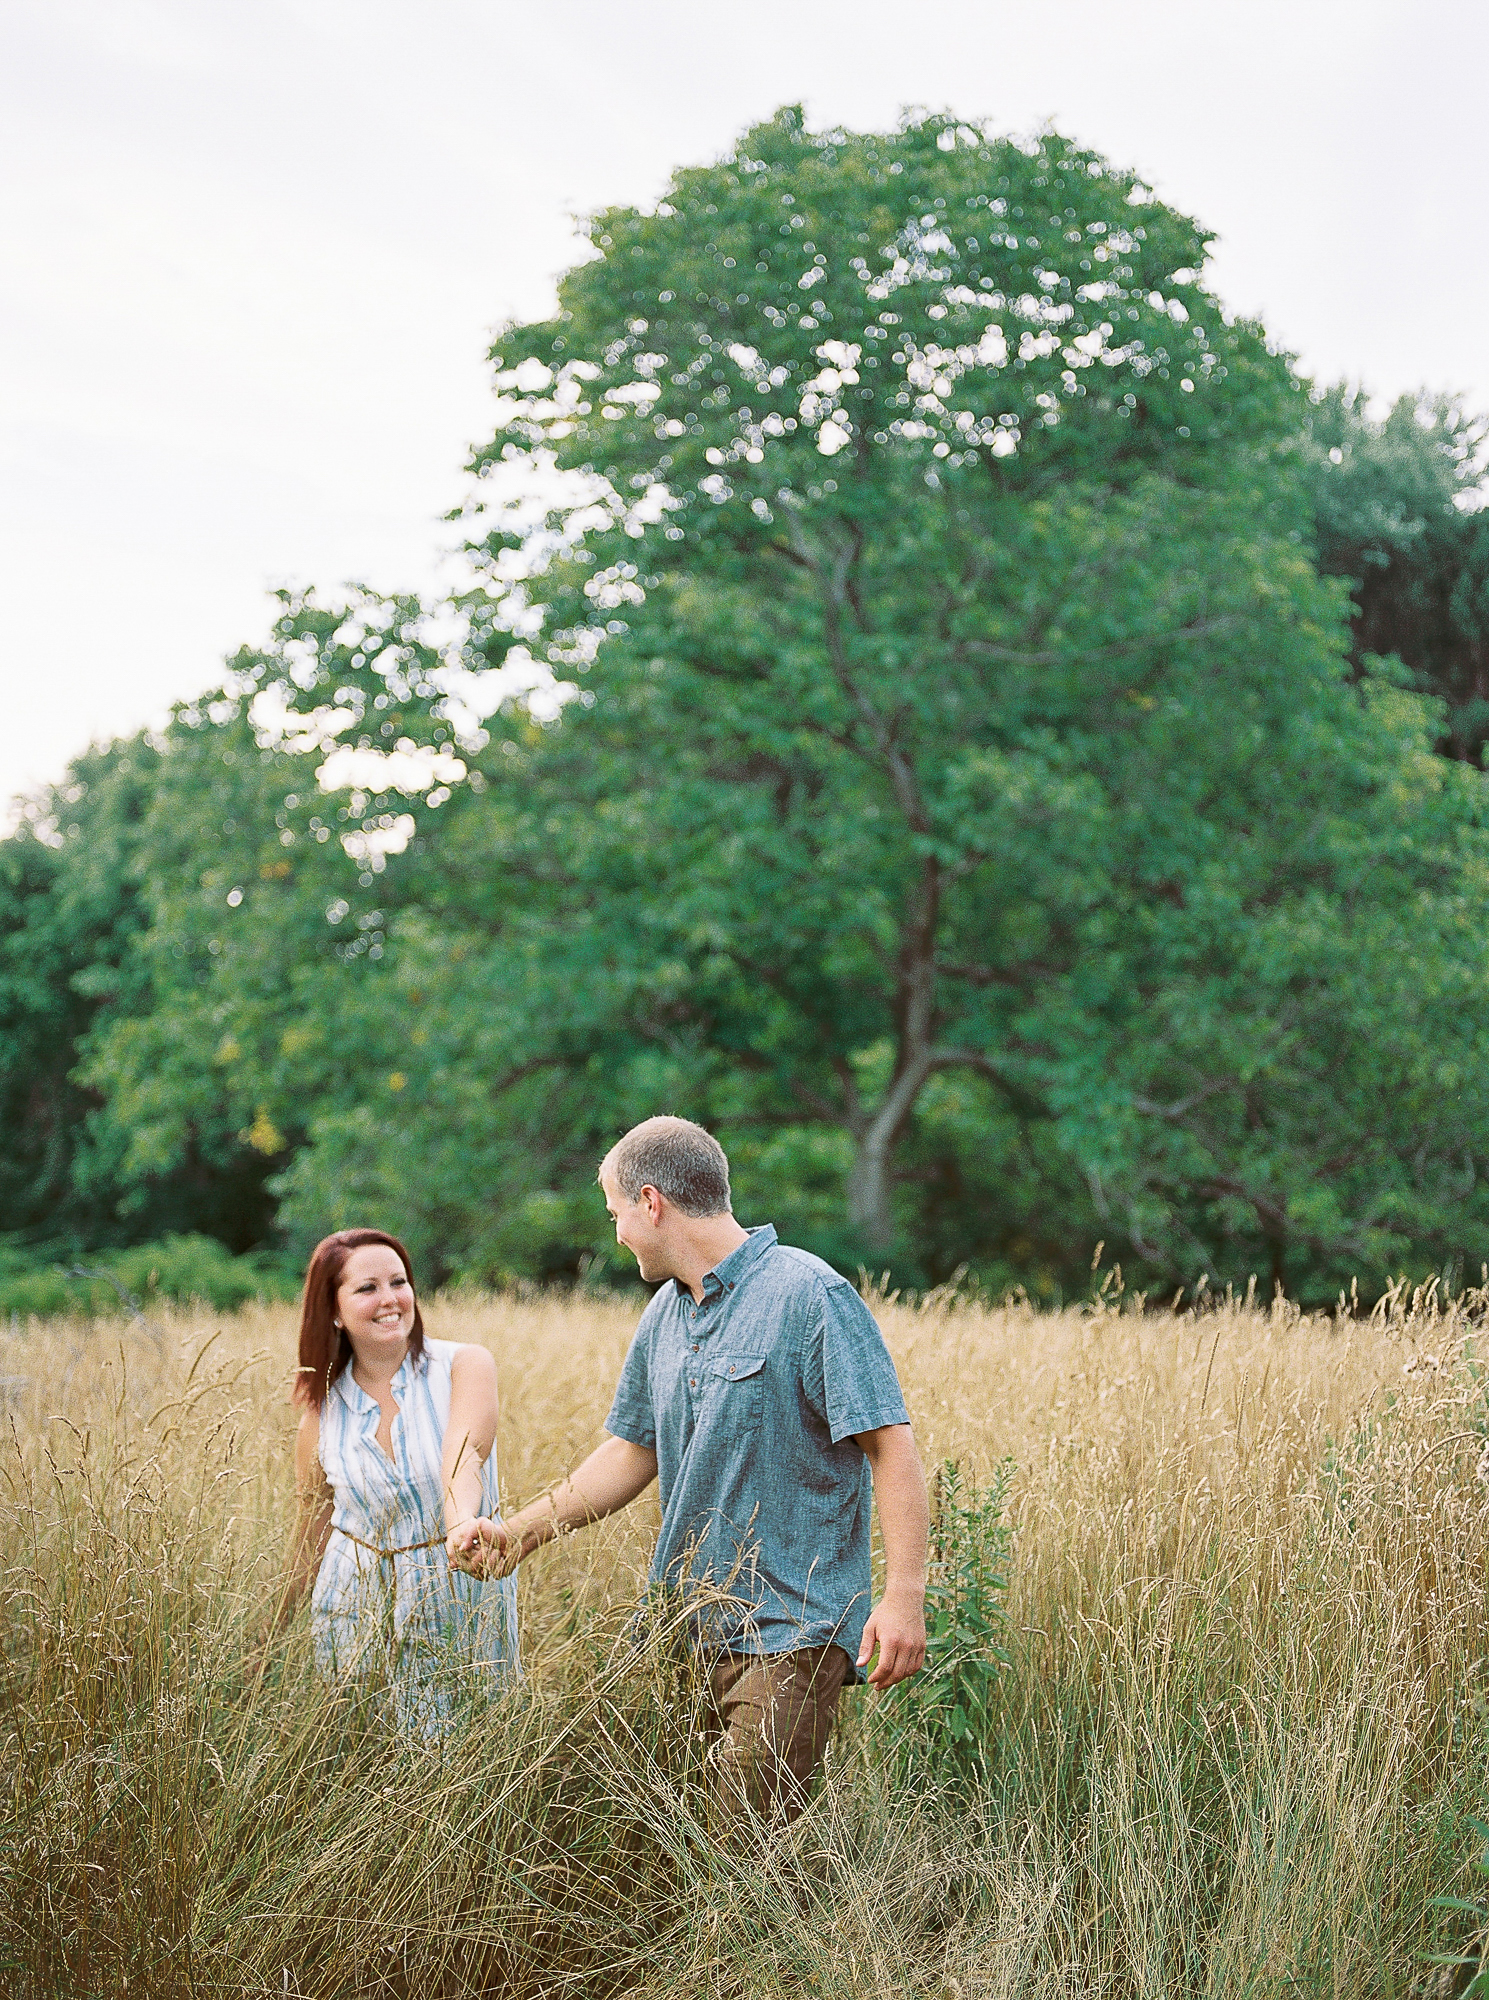 Alexandra-Elise-Photography-Ali-Reed-Film-Farm-Engagement-Session-004